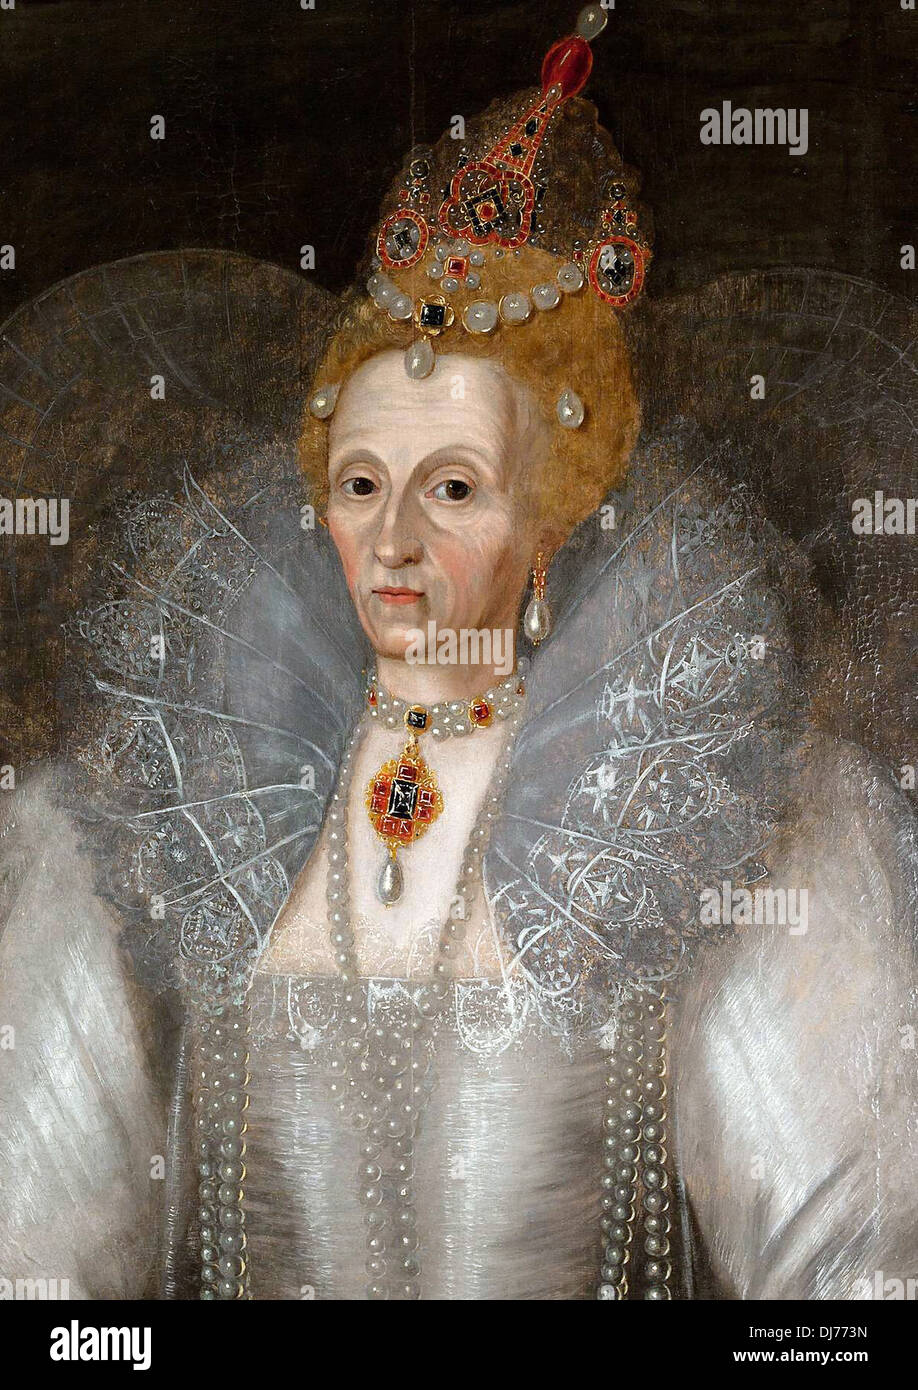 Realistic portrait of Queen Elizabeth I - Stock Image